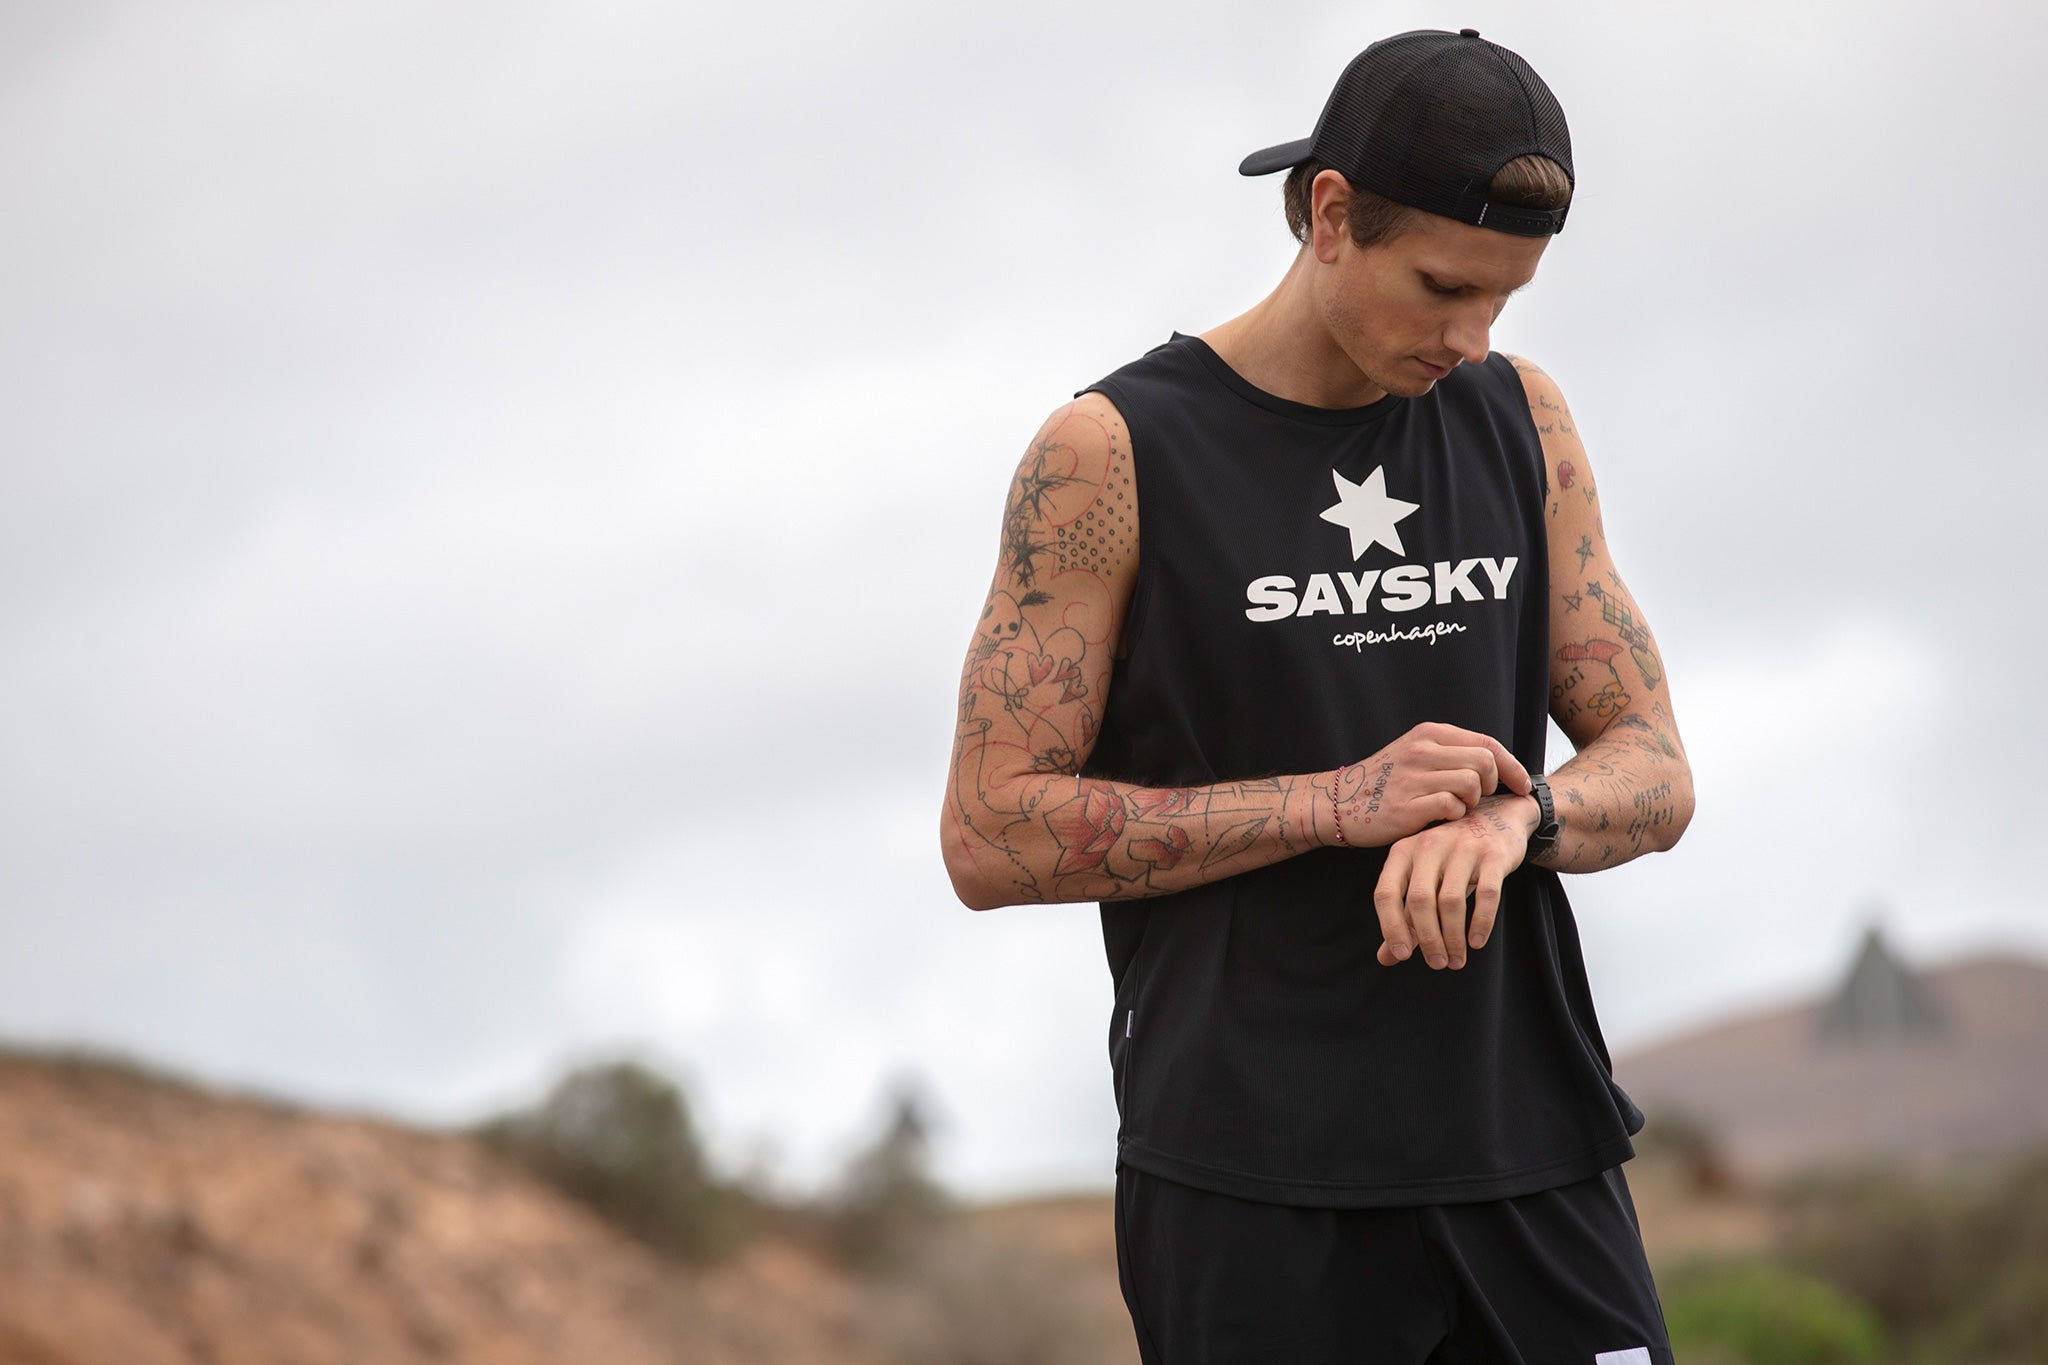 SAYSKY Spring/Summer 2019 Running Collection